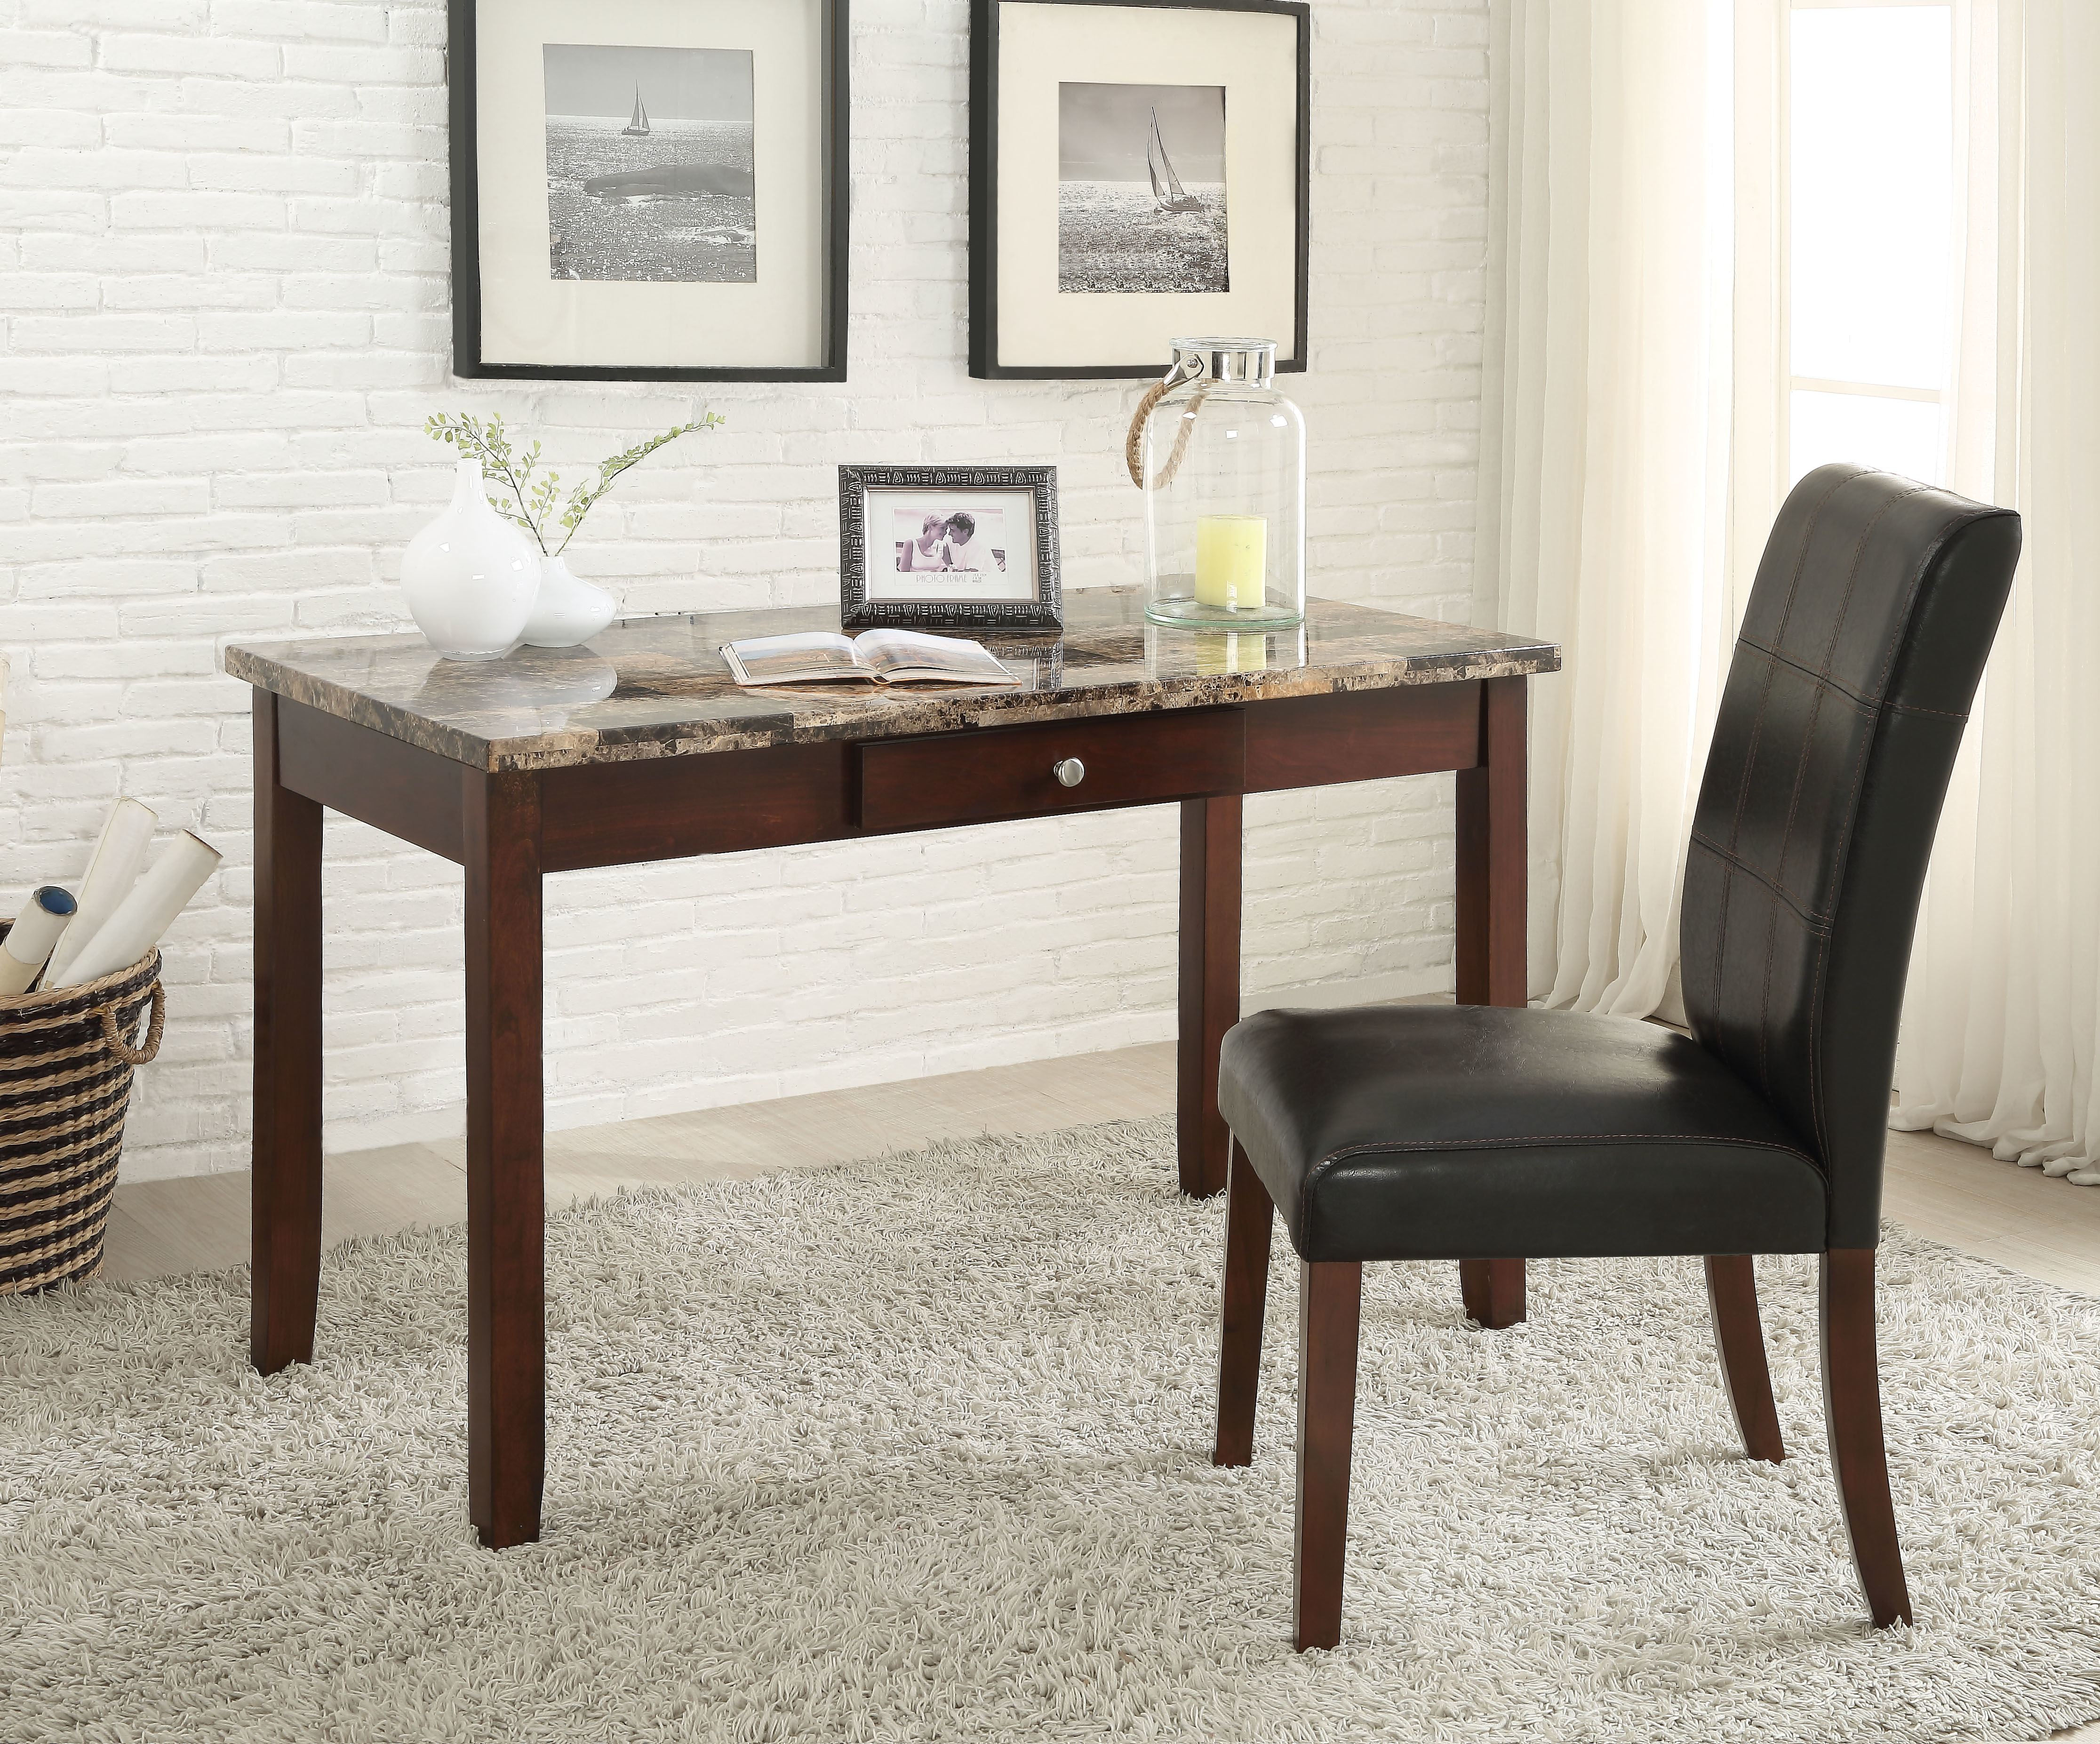 Sydney Desk & Chair, Brown Faux Marble, 2 Piece Pack